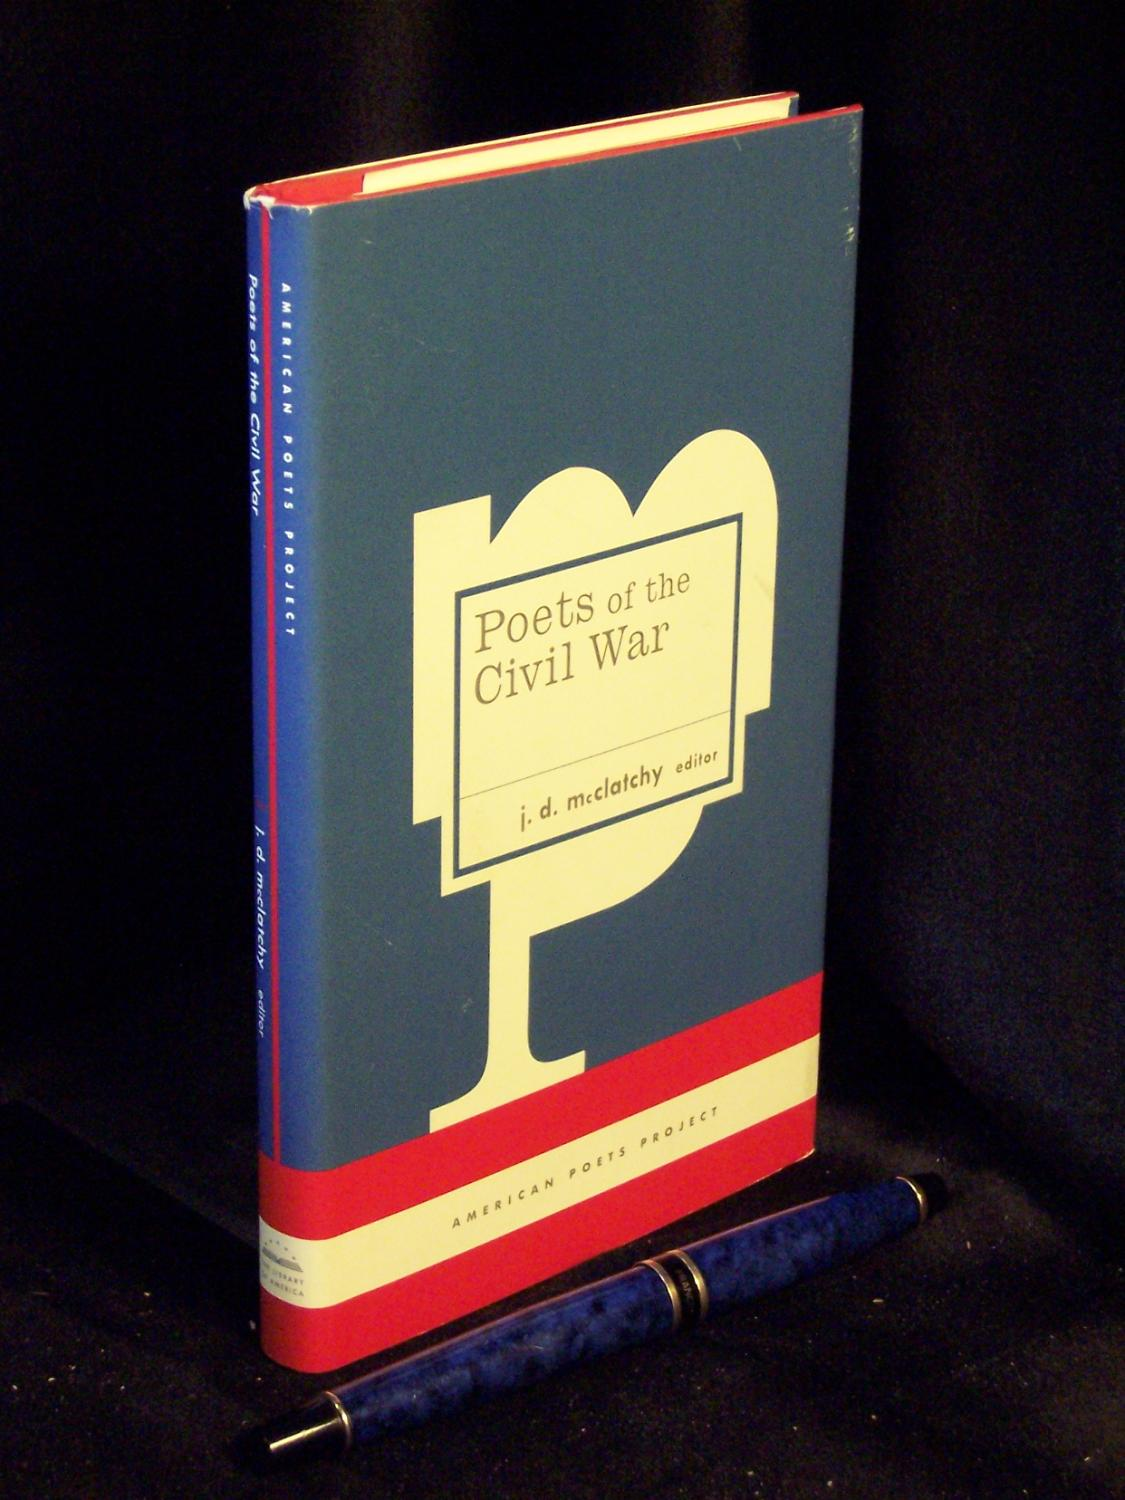 Poets of the Civil War - aus der Reihe: American poets project - Band: 14 - McClatchy, J.D. (editor) -